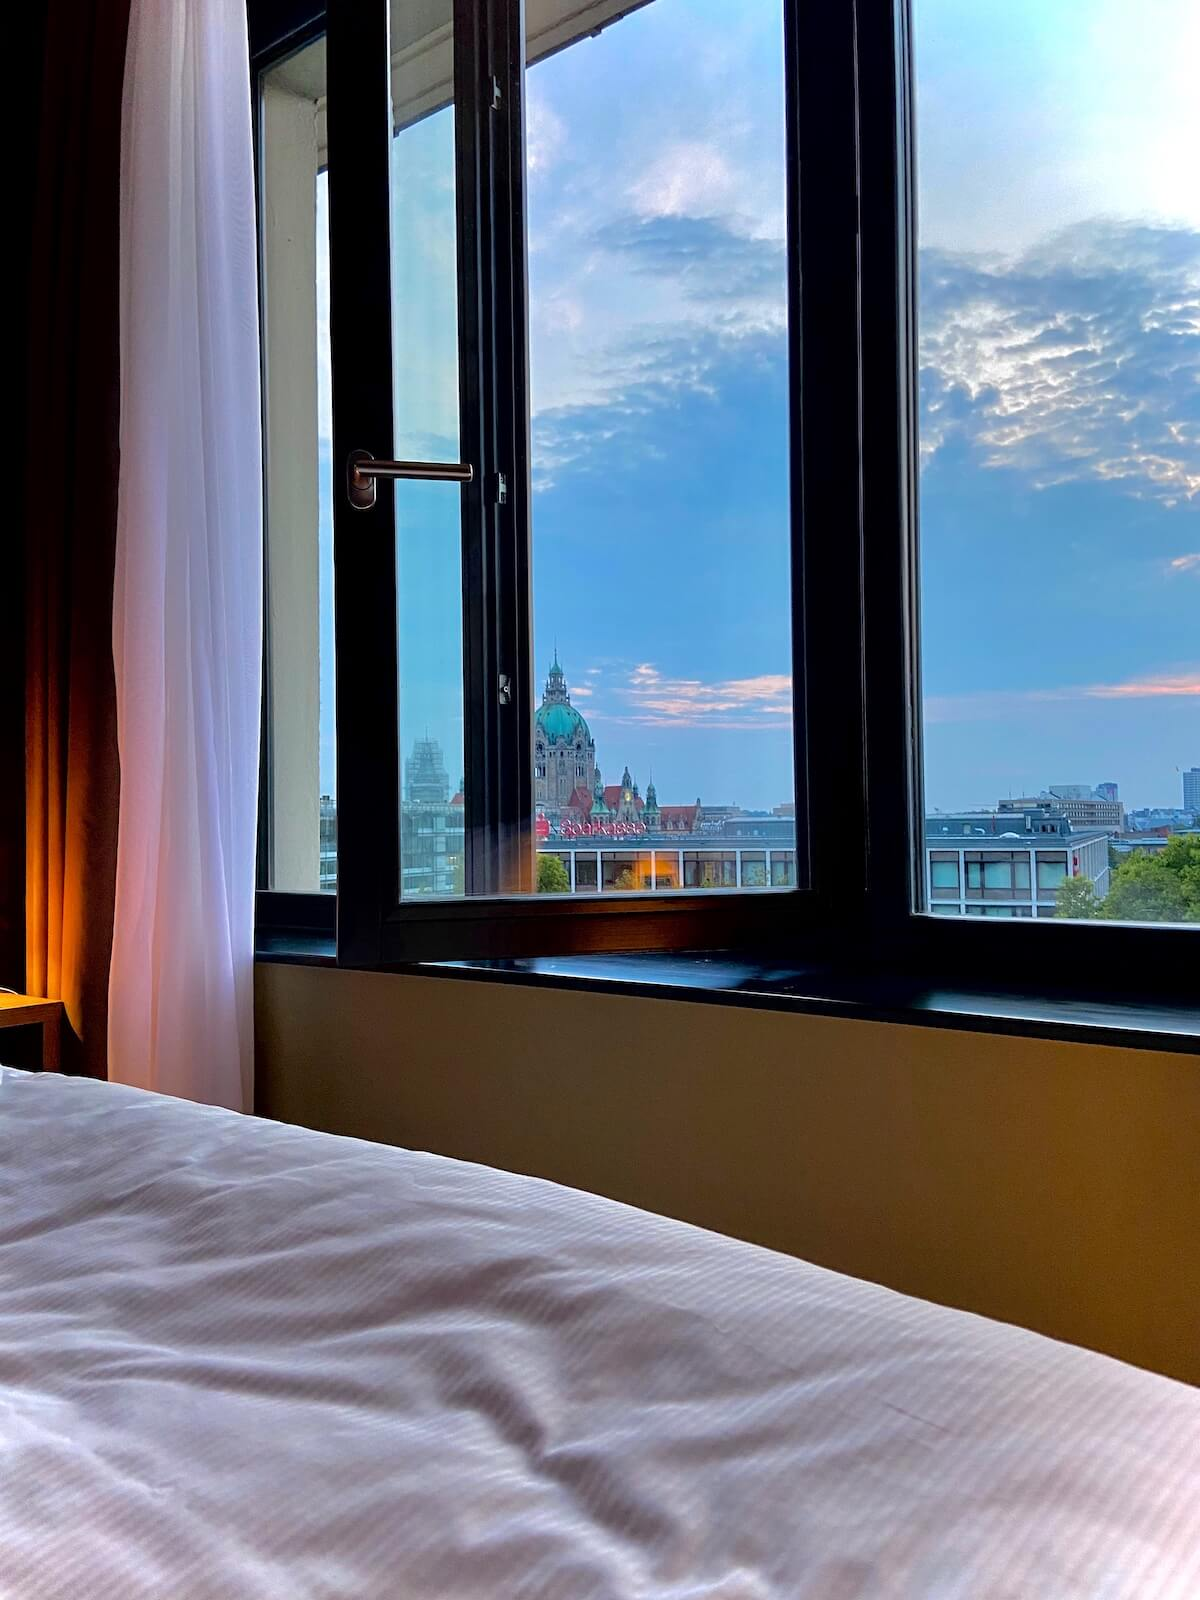 zimmer mit aussicht me and all hannover